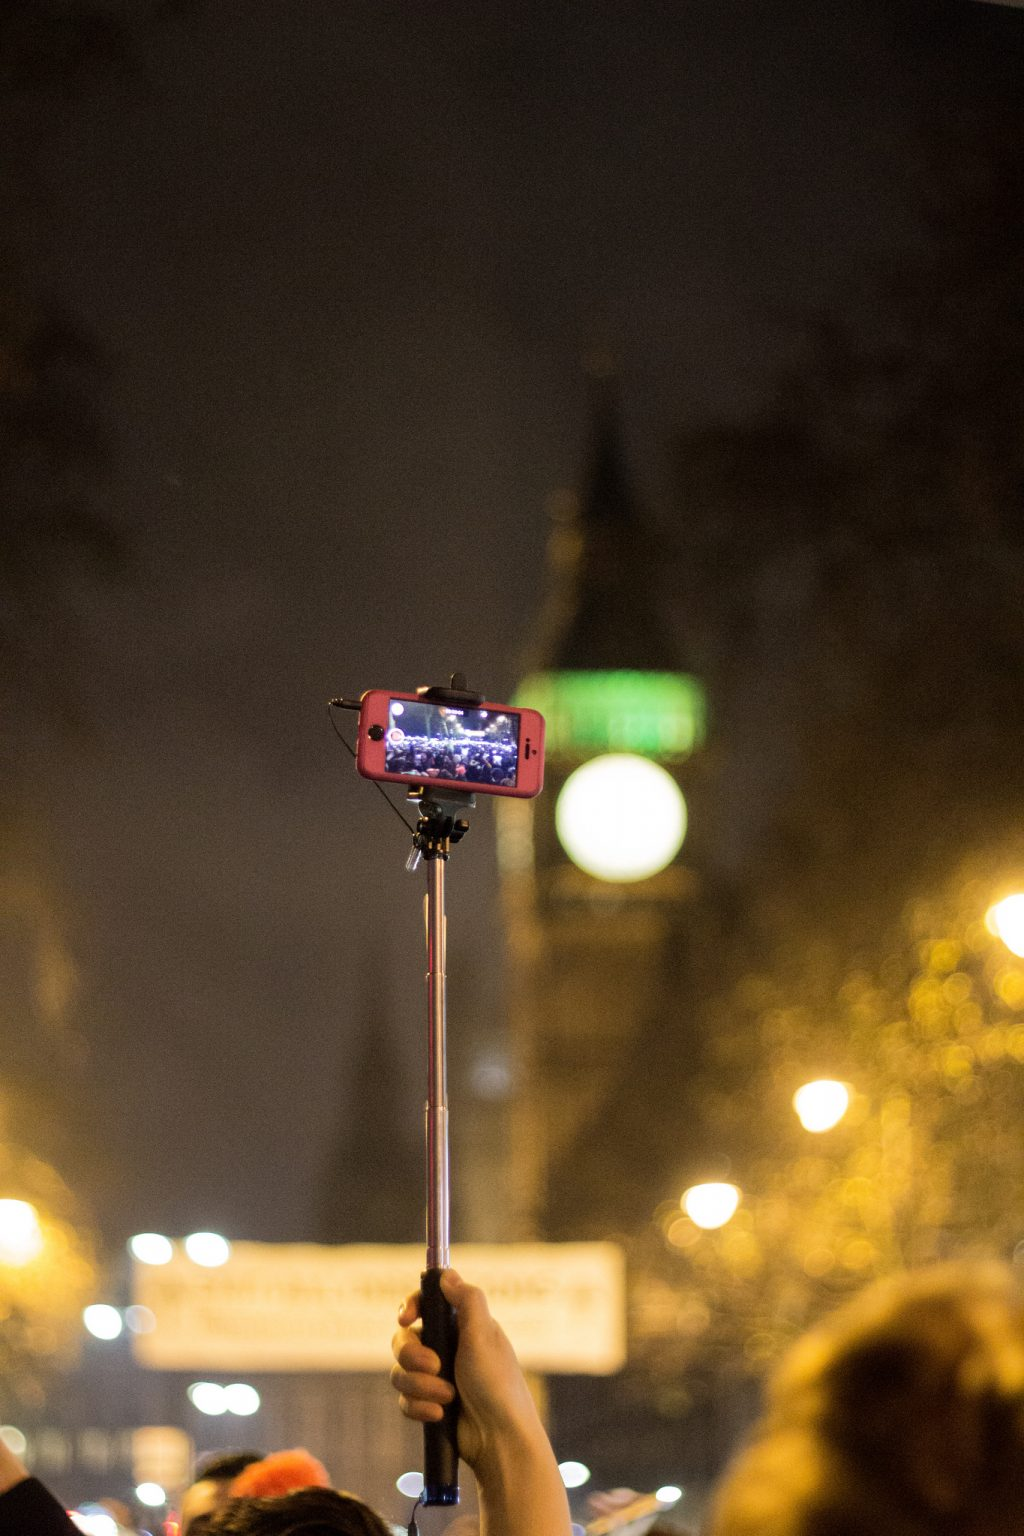 Selfie stick with Big Ben in background